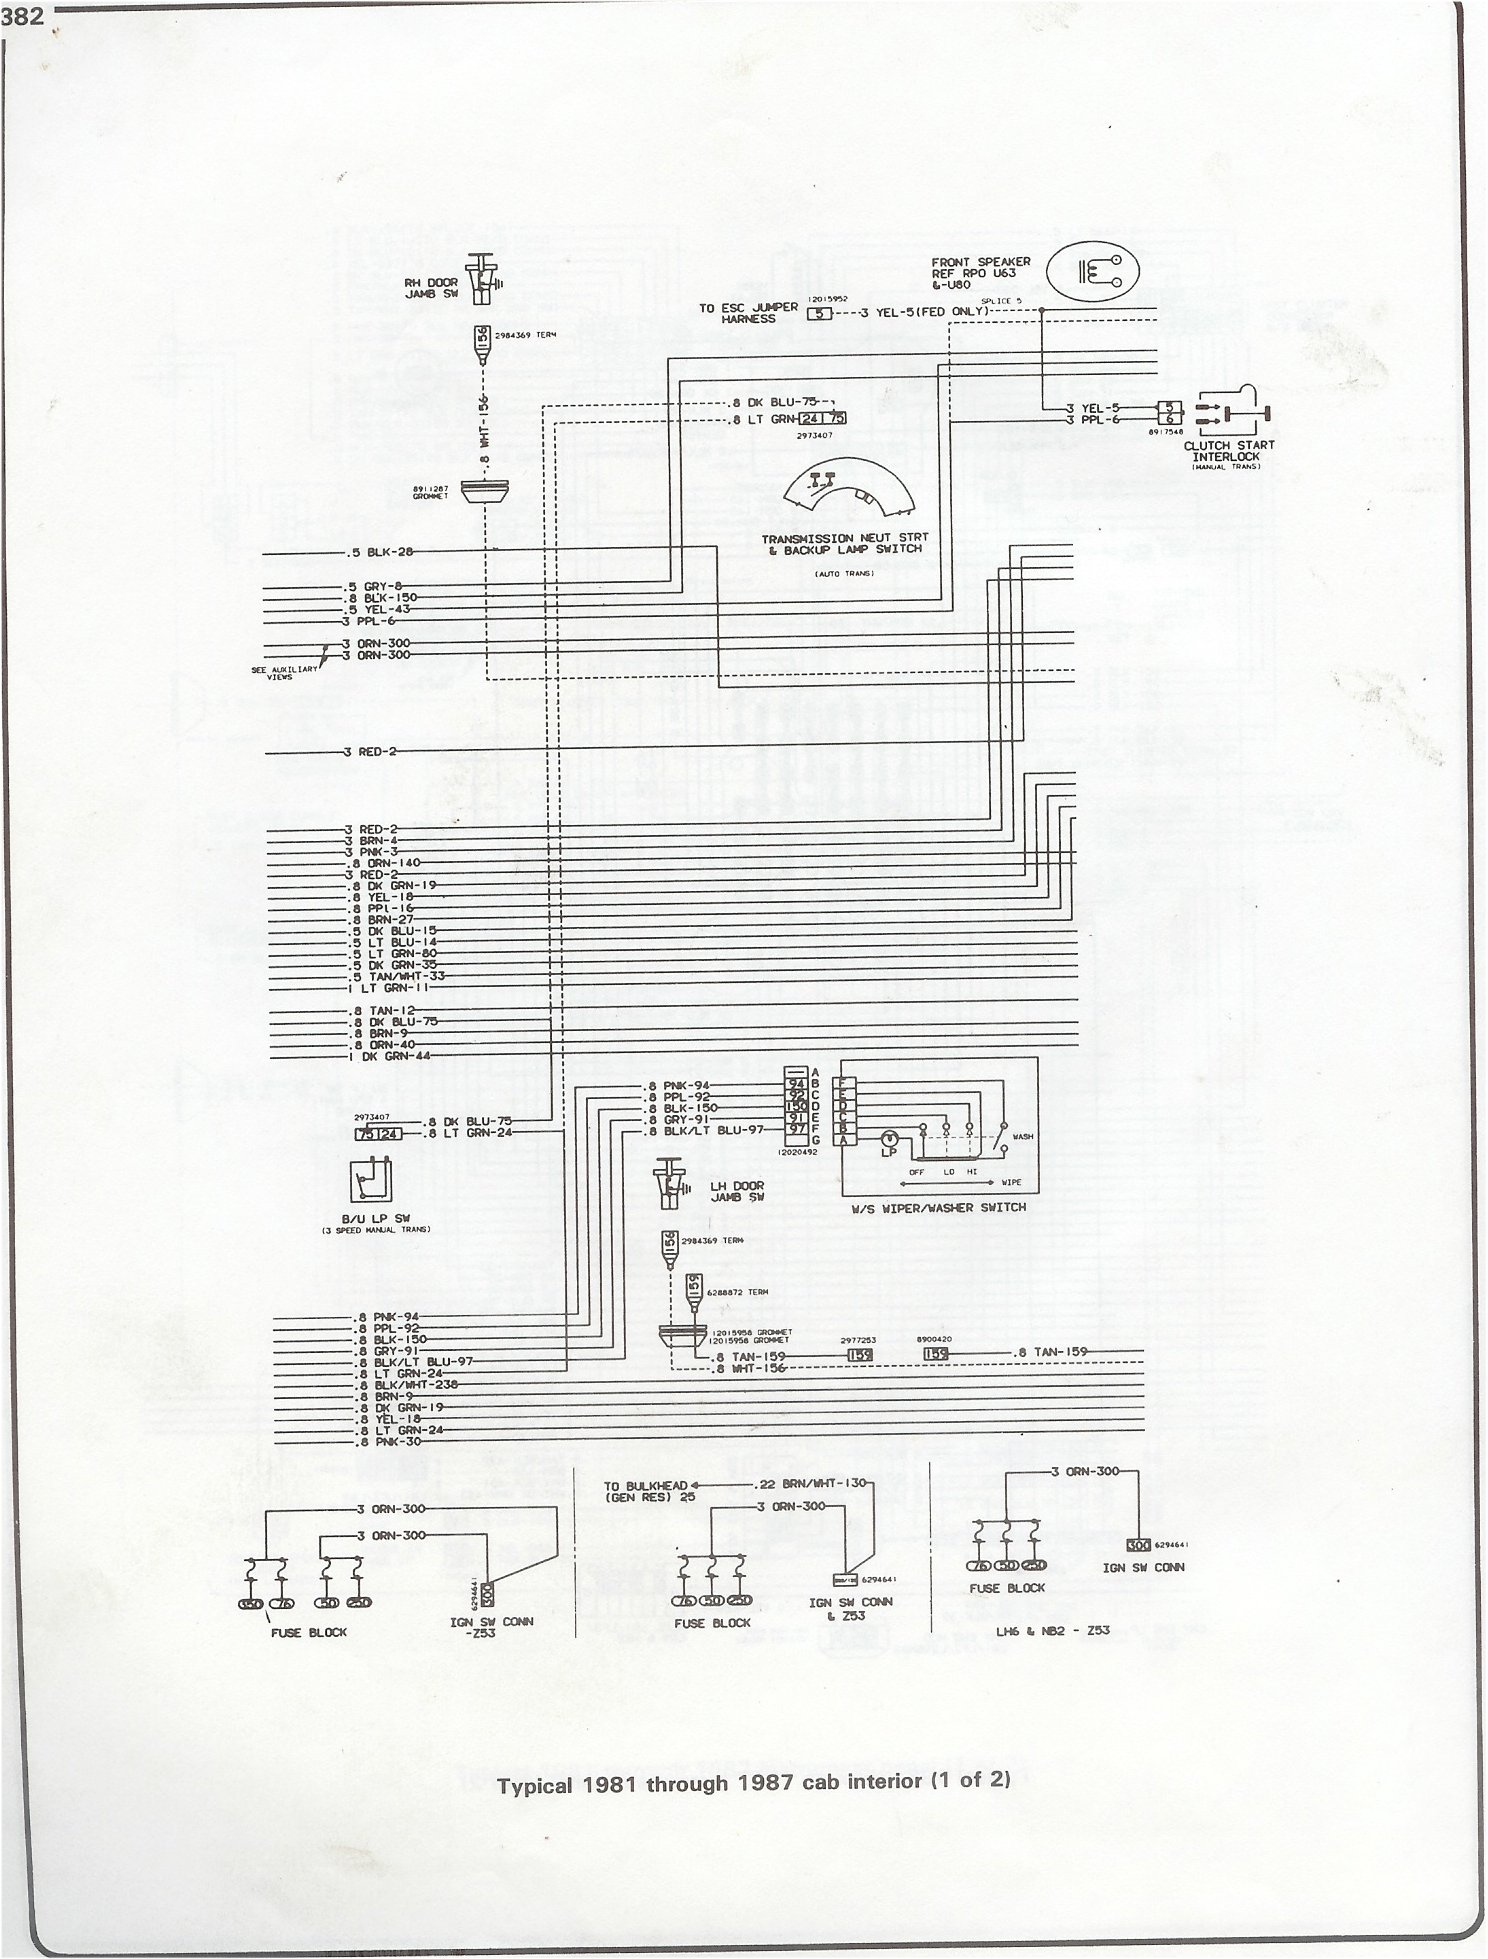 66 chevy truck wiring harness brake light switch wiring diagram? - blazer forum - chevy ...